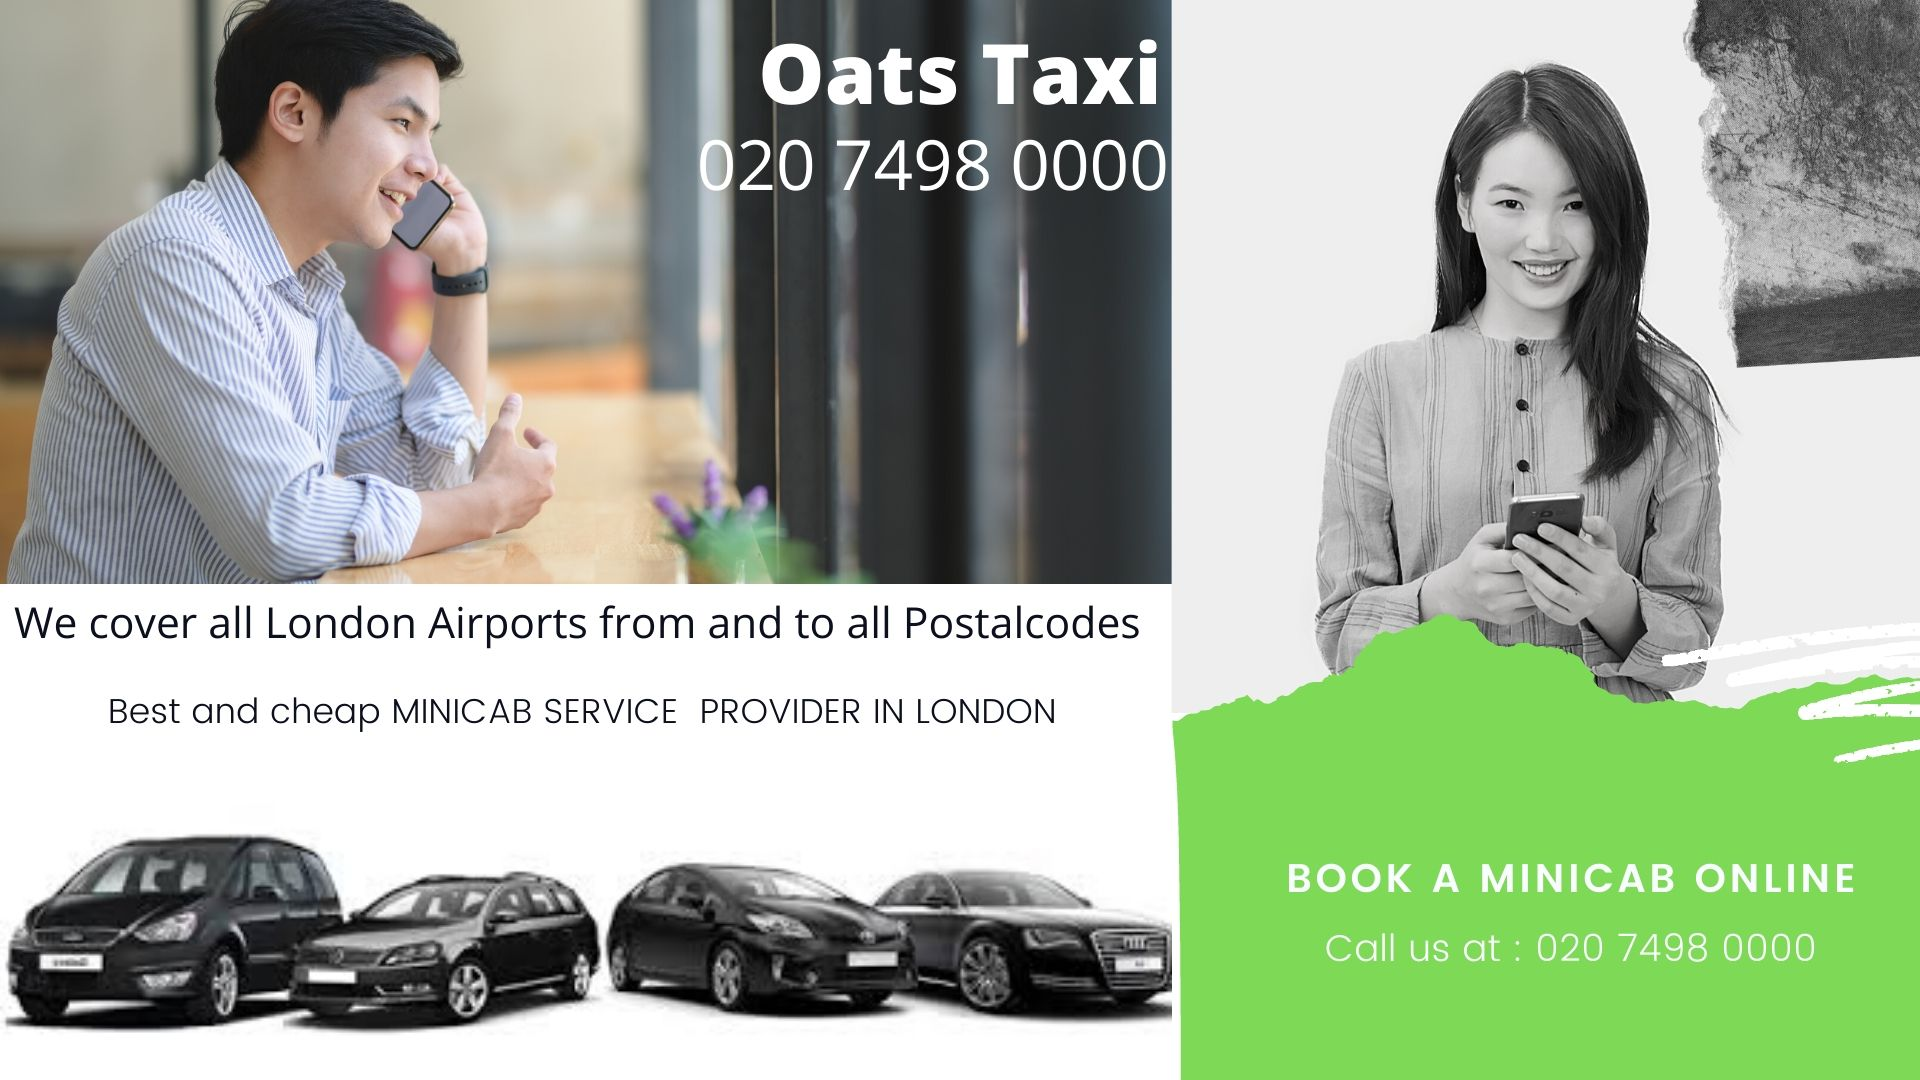 Nearest Minicab Office in Ham, Surrey | Minicab Gatwick Airport | Call now : 02074980000